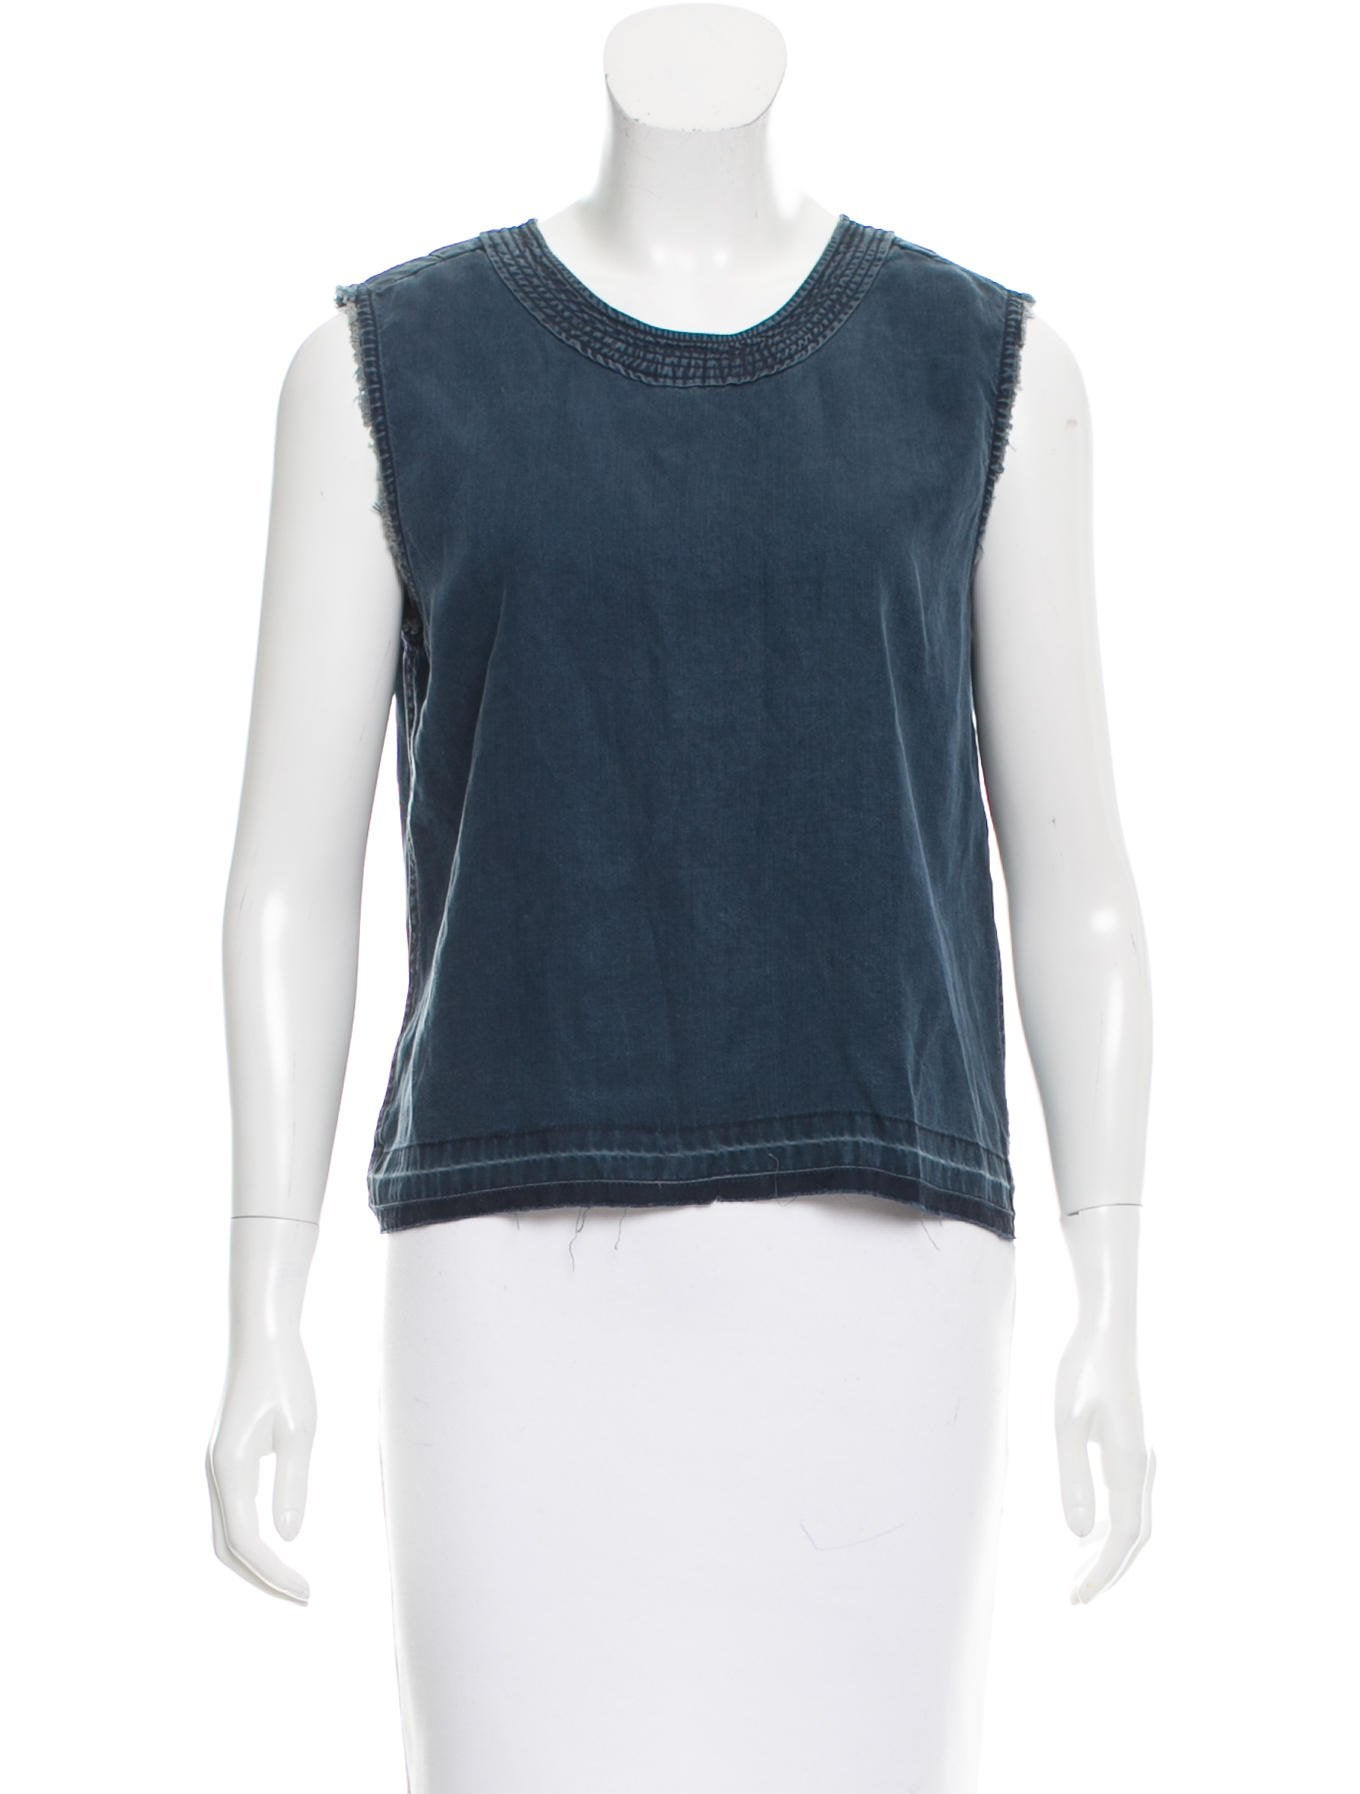 Rag bone sleeveless chambray top w tags clothing for Chambray top